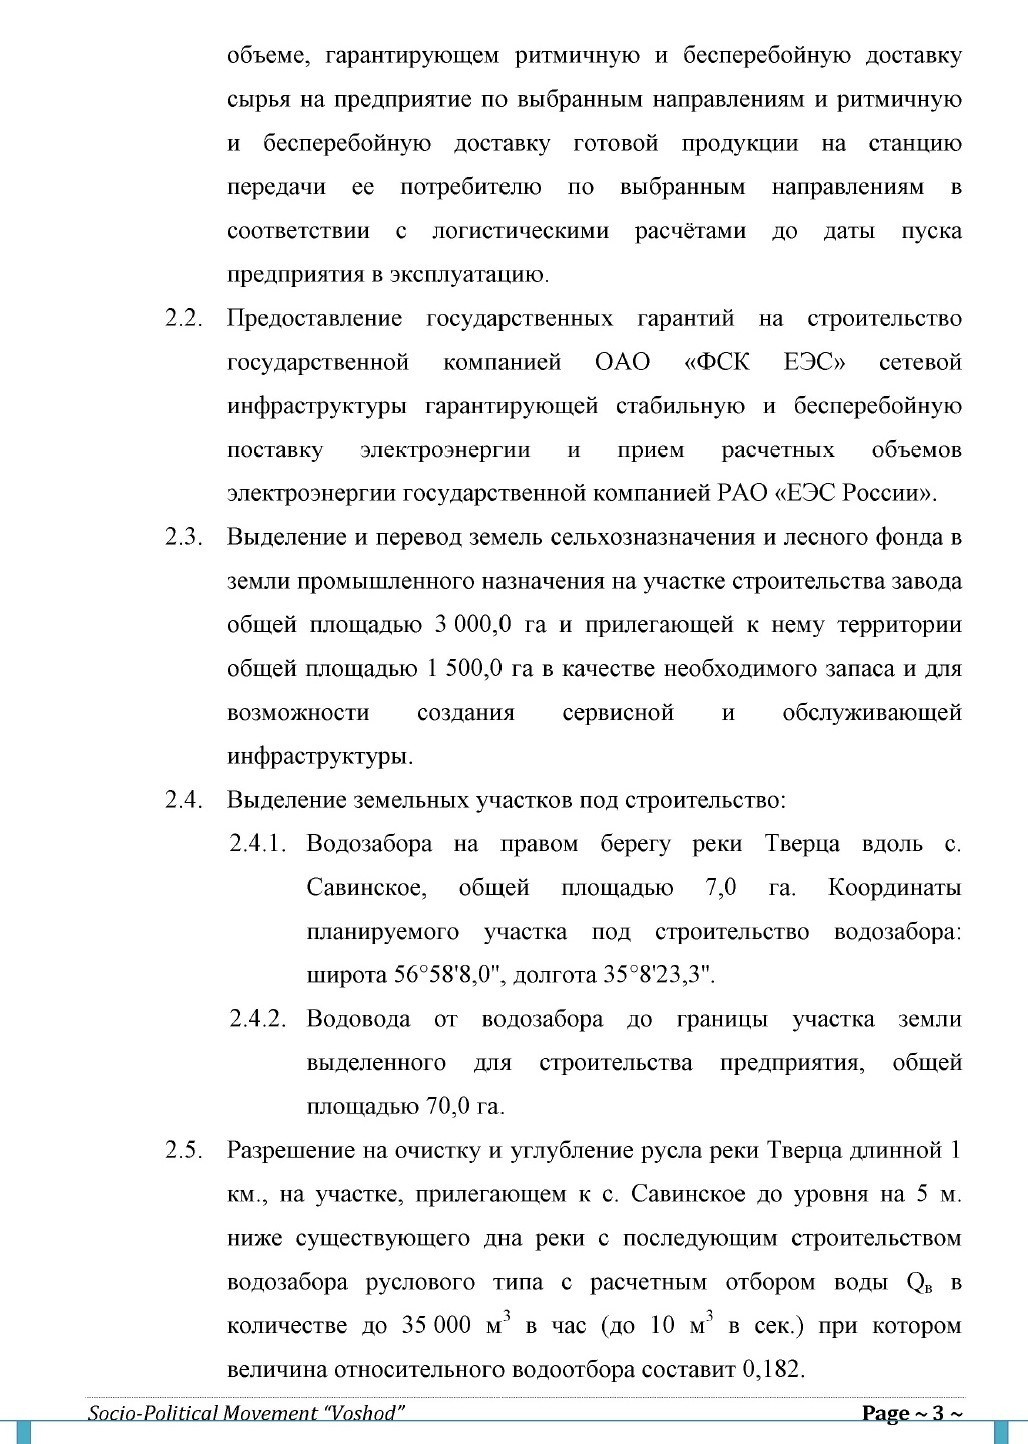 Letter to President of Russia N37-3